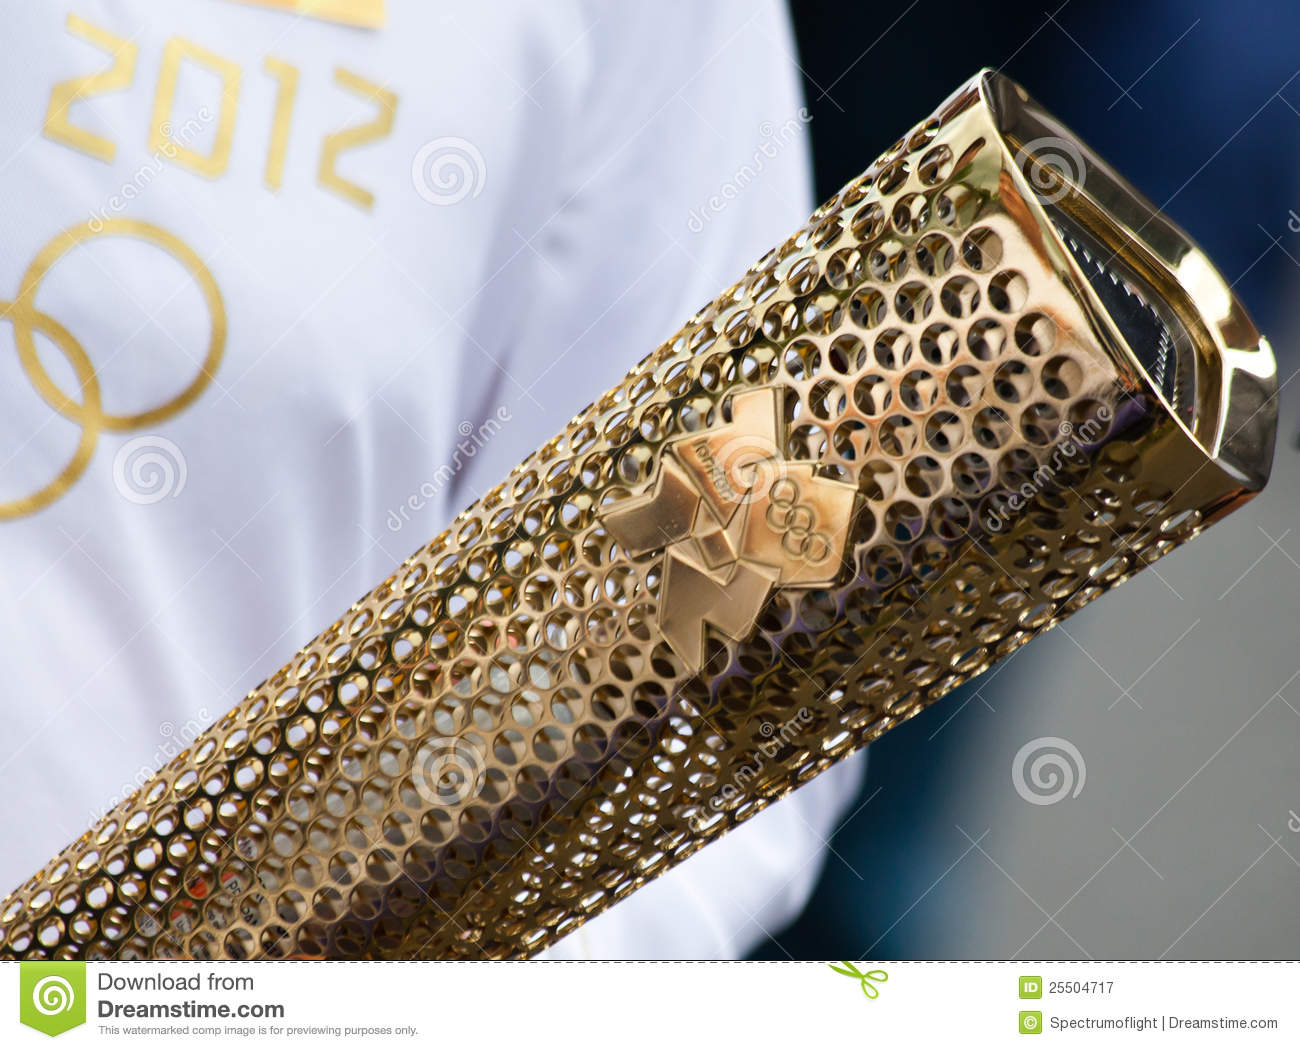 Olympic Torch London 2012